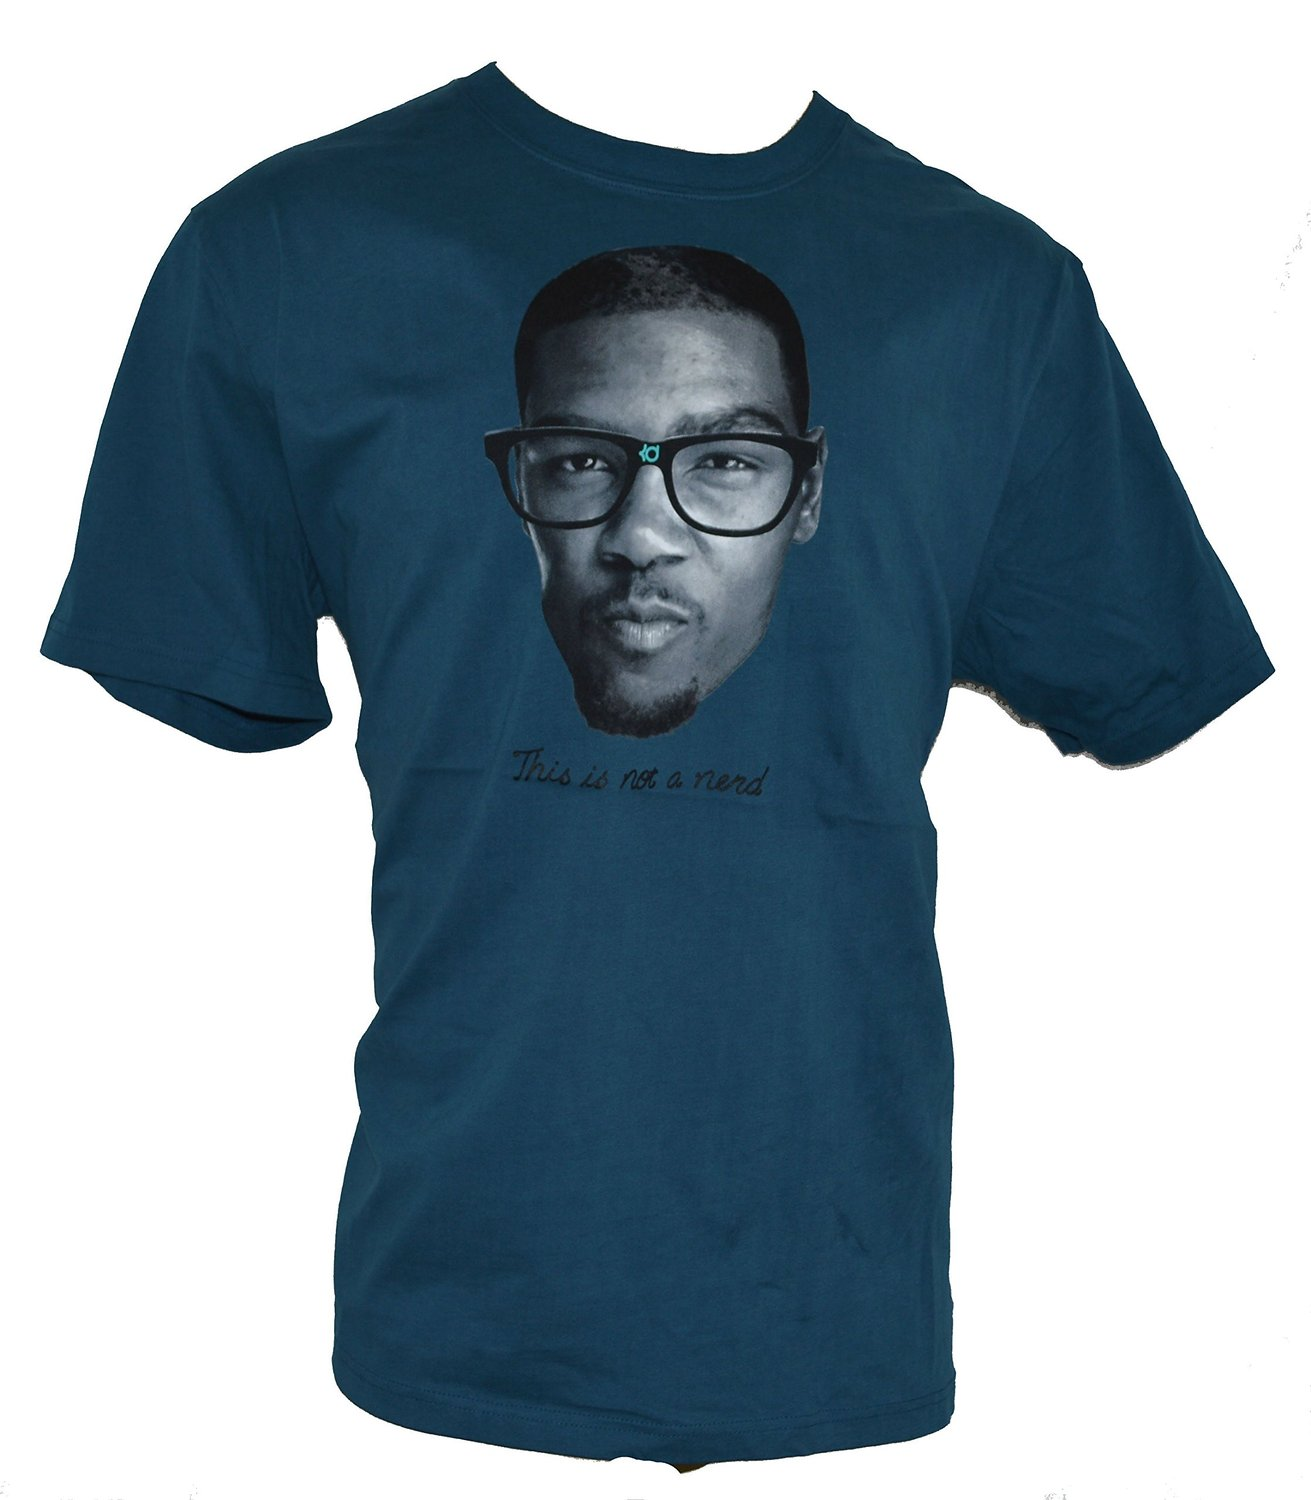 new arrival ec8ca 7b085 Get Quotations · Nike Men s Kevin Durant KD This Is Not A Nerd Basketball T- Shirt X-